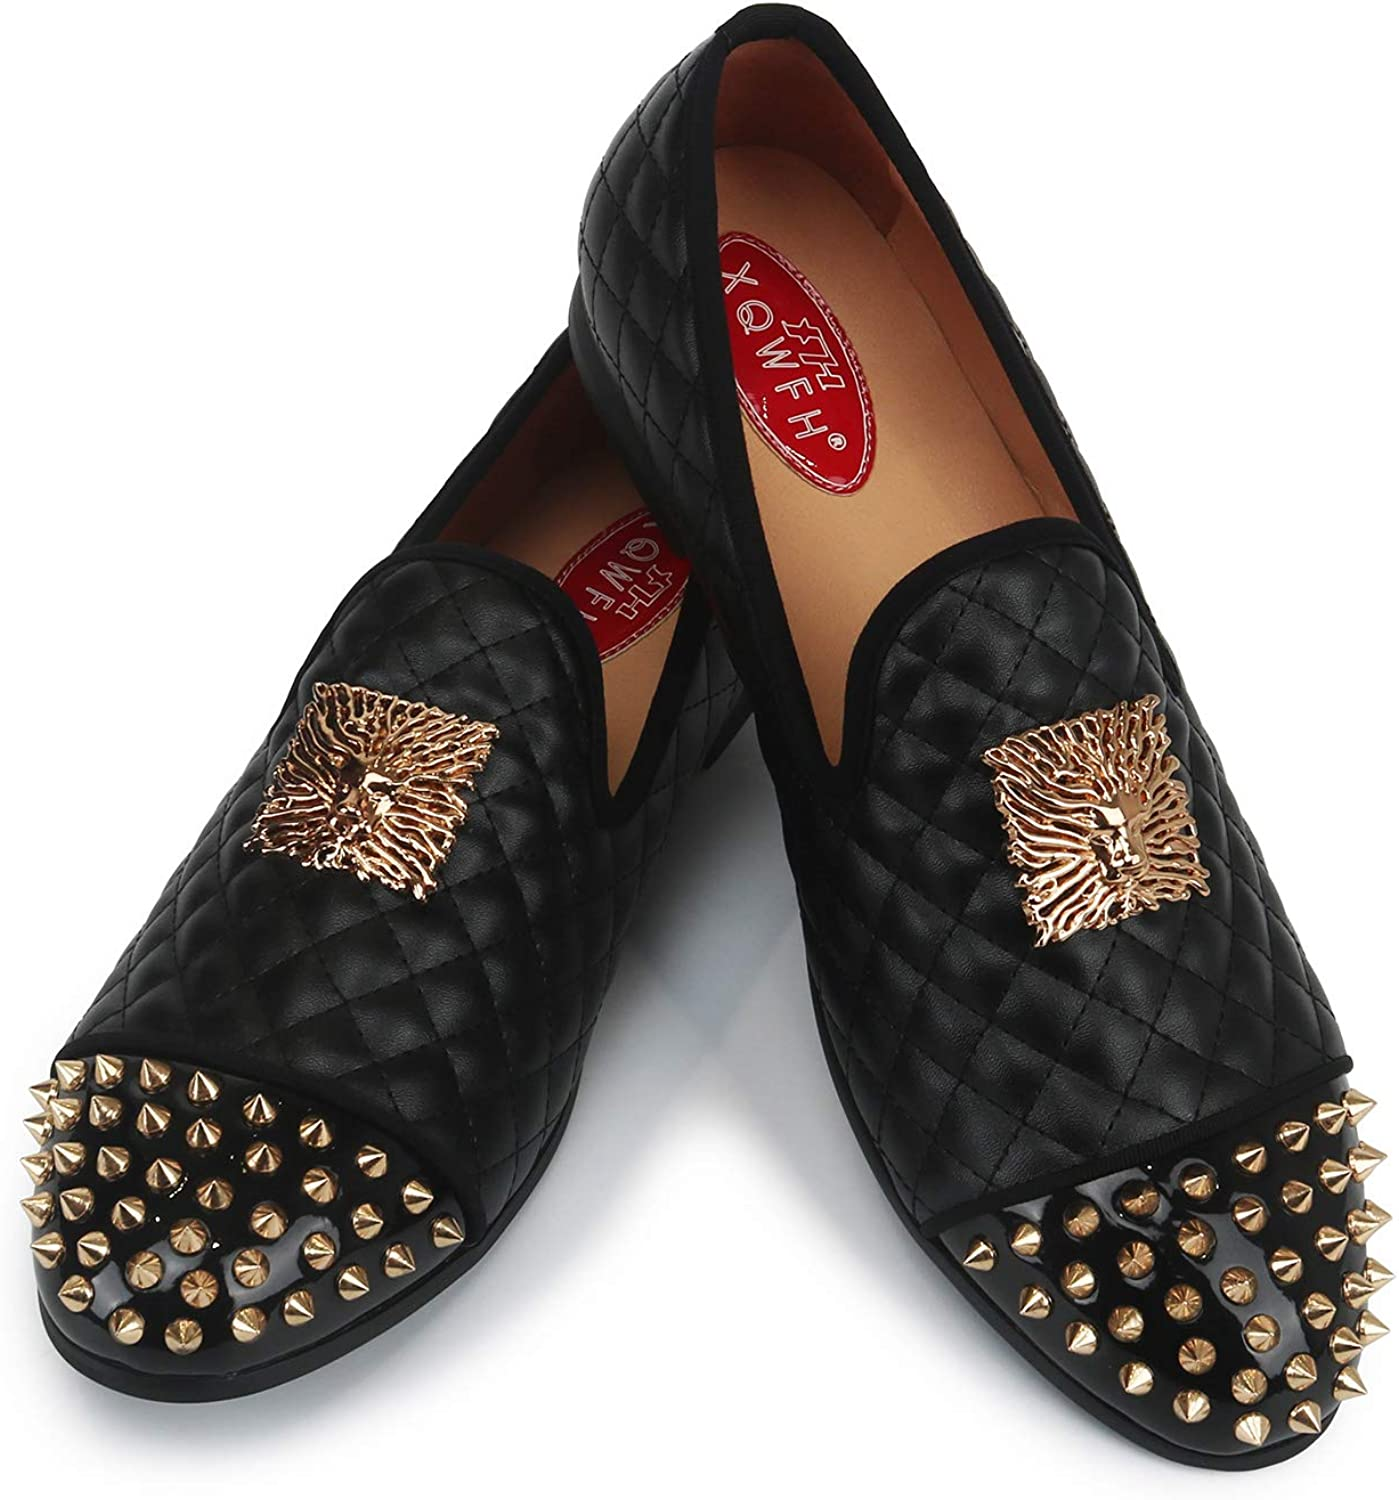 XQWFH Mens Leather Loafers 直営ストア 格安 価格でご提供いたします Spiked Dress with P Buckle Shoes Gold